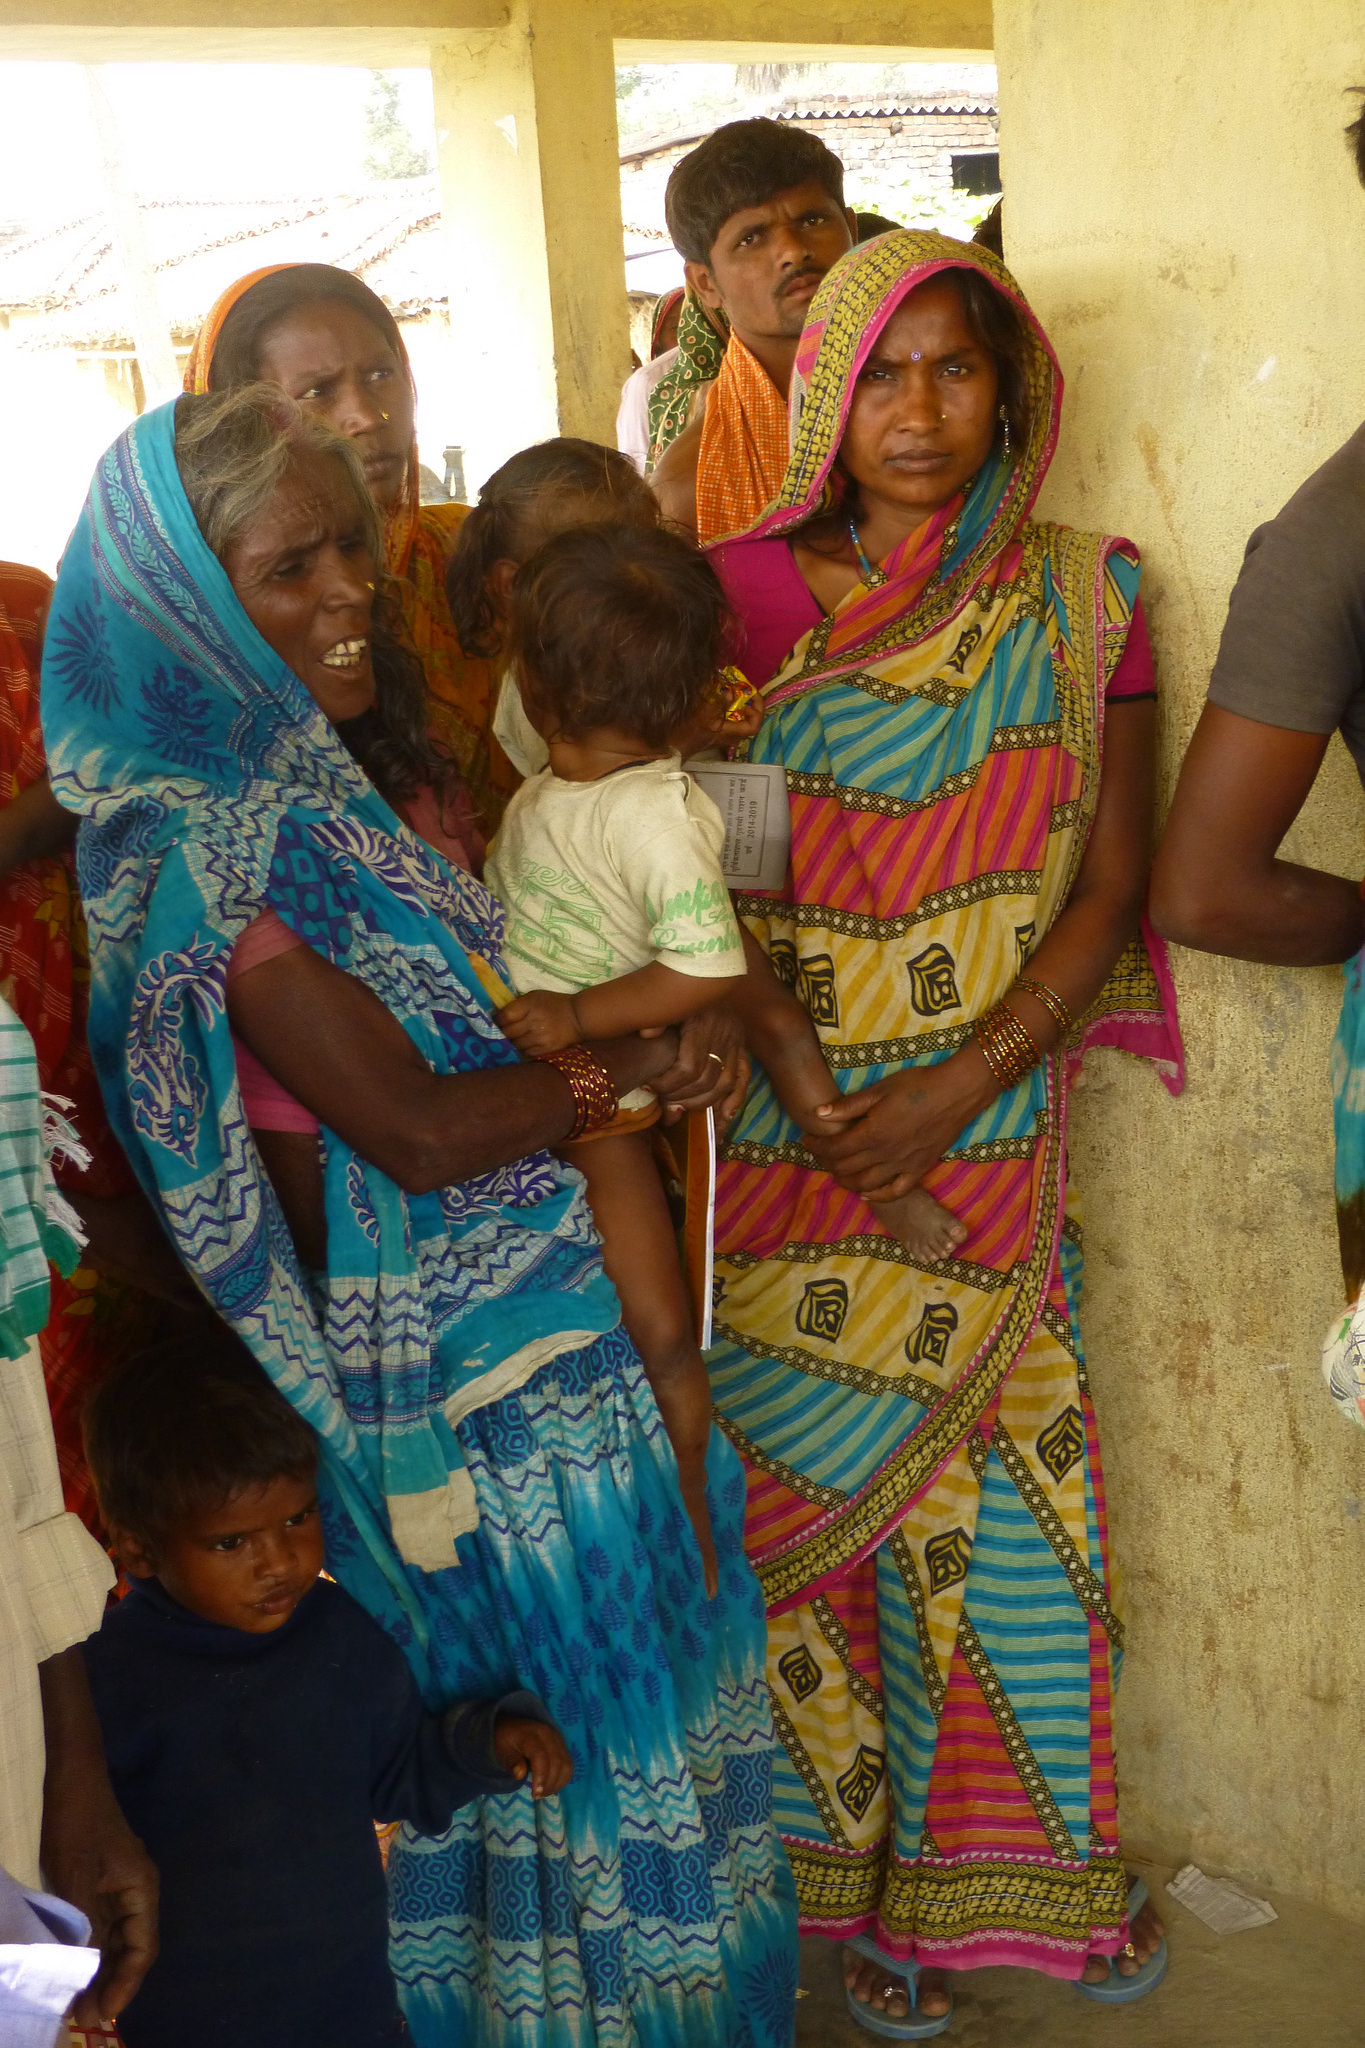 Mothers who a few years ago likely didn't know of the importance of vaccinating their children now wait patiently for their turn to get their children protected - photo by Sarah.